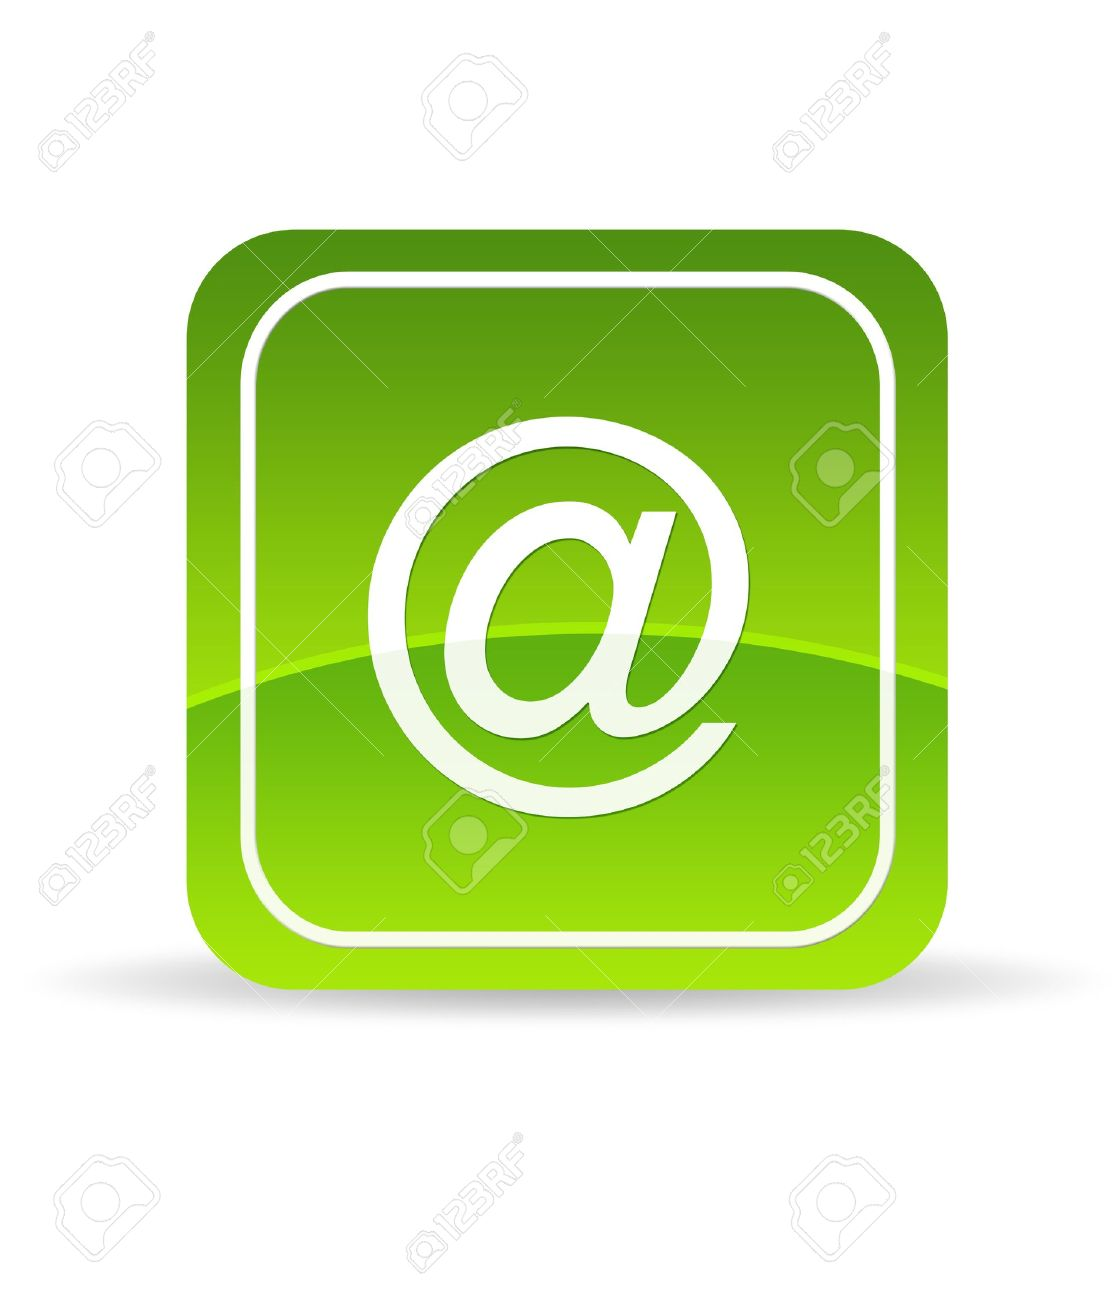 High resolution green email icon on white background. Stock Photo - 9750115